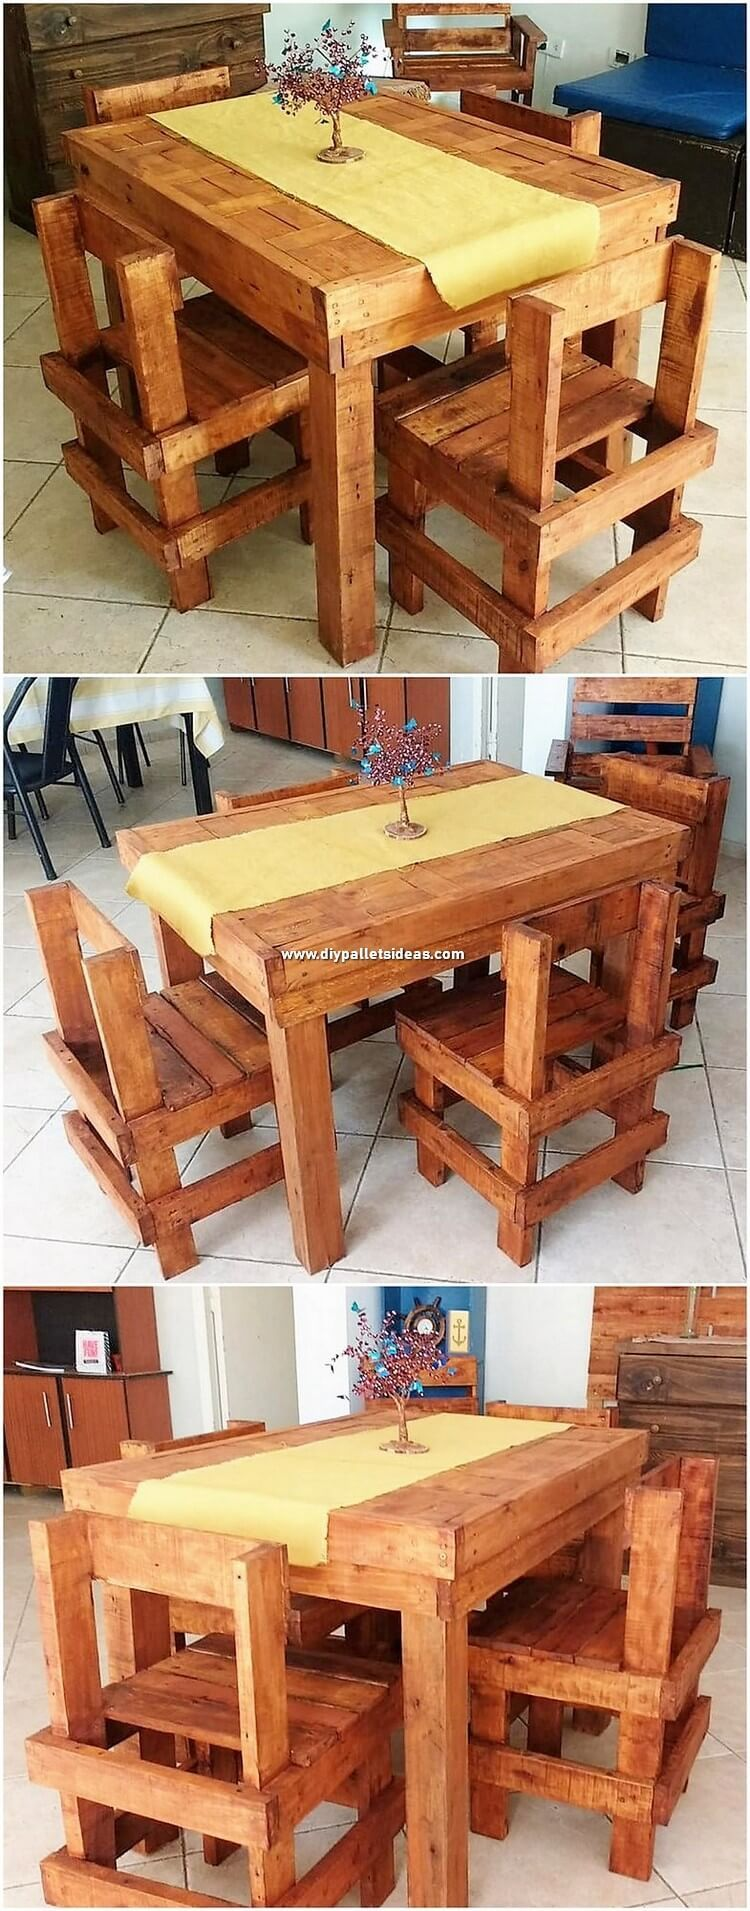 Effortless DIY Projects You Can Make with Shipping Pallets ...